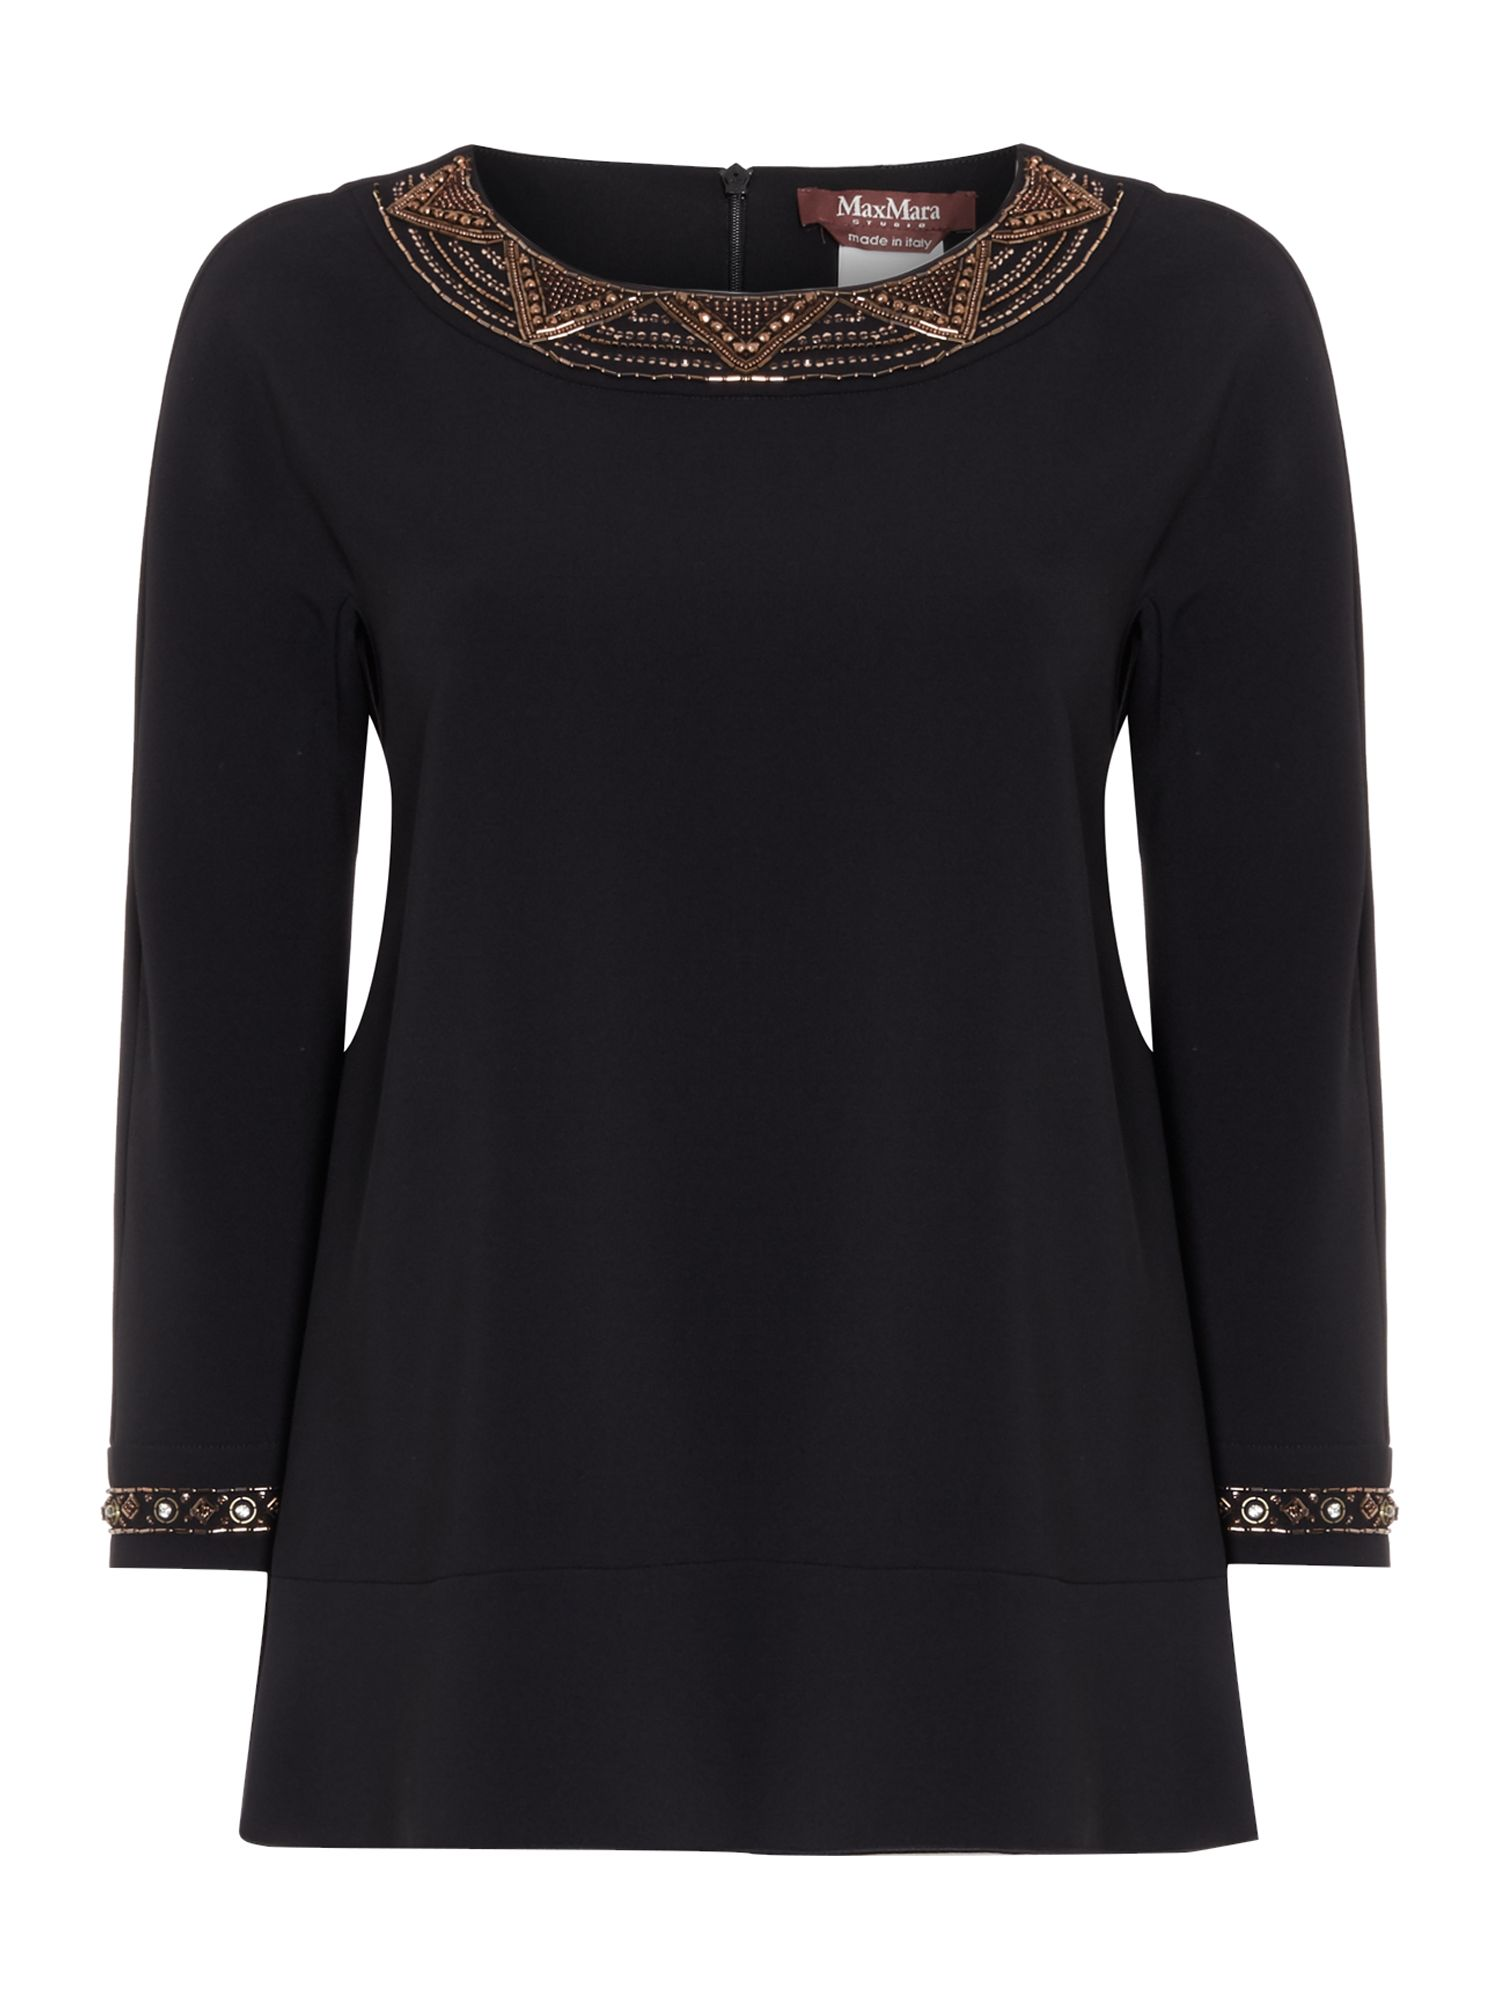 Max Mara Studio Flavio long sleeve embellished cuff top, Black